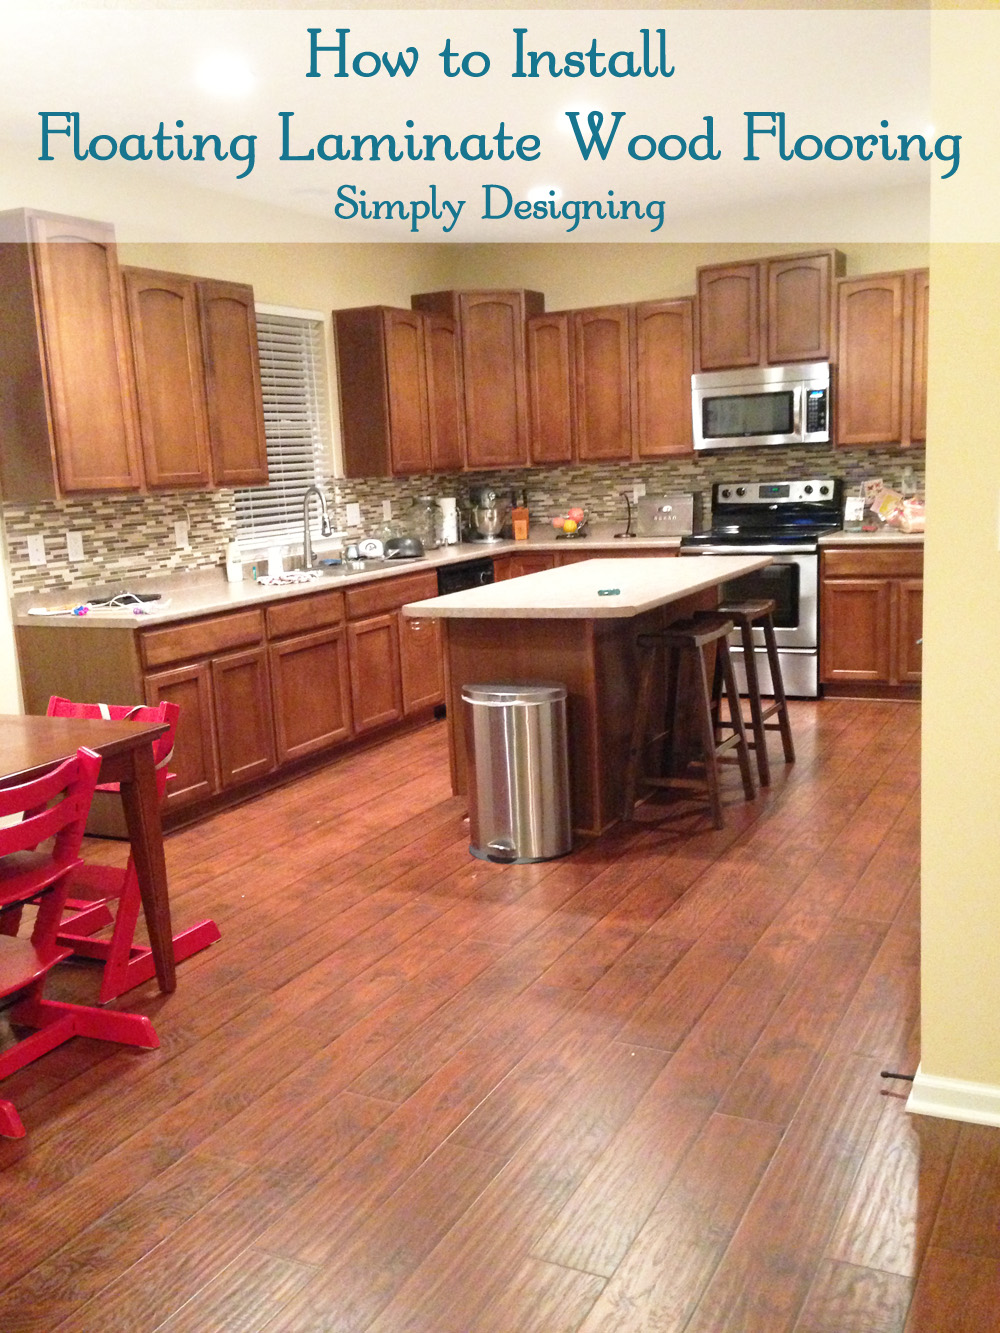 Kitchen Flooring Installation How To Install Floating Wood Laminate Flooring Part 1 The